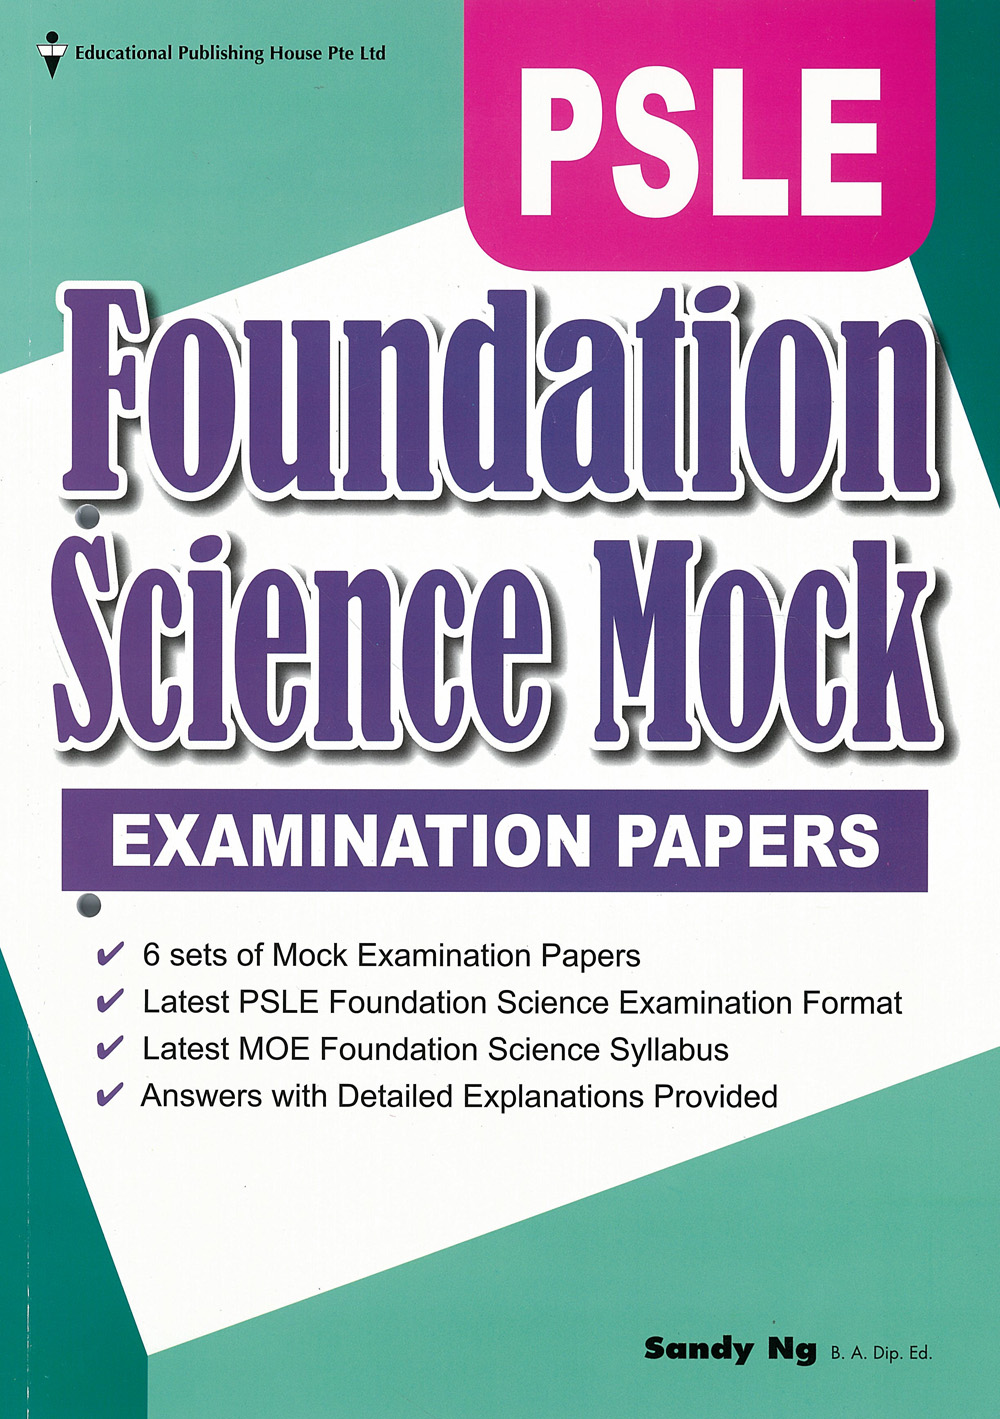 science mock papers